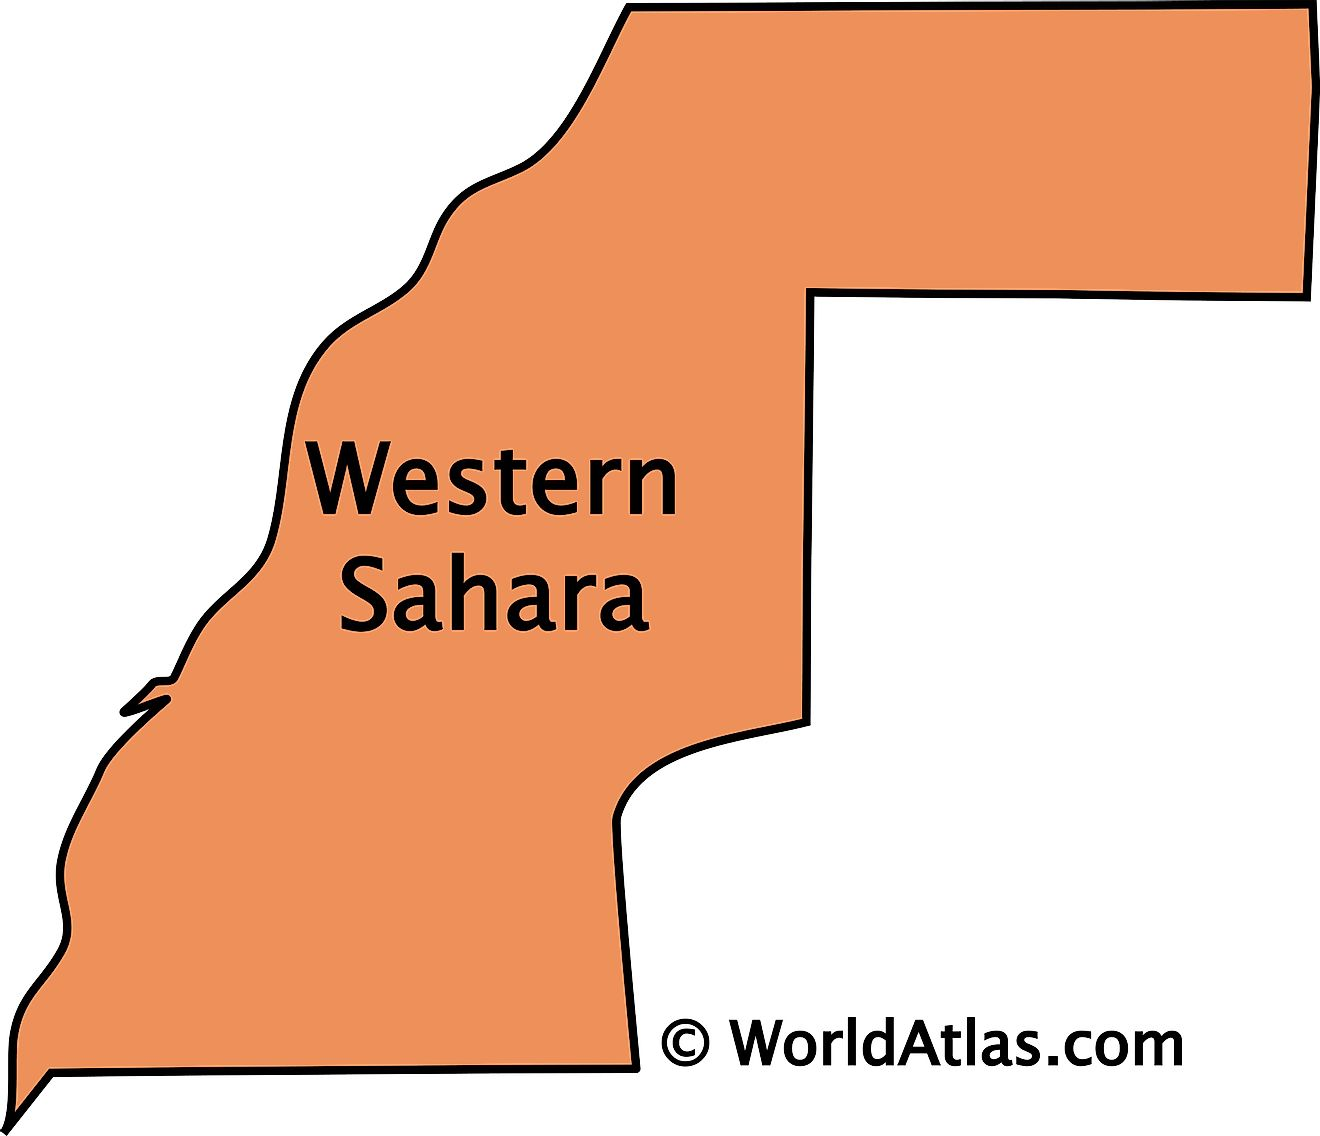 Outline Map of Western Sahara